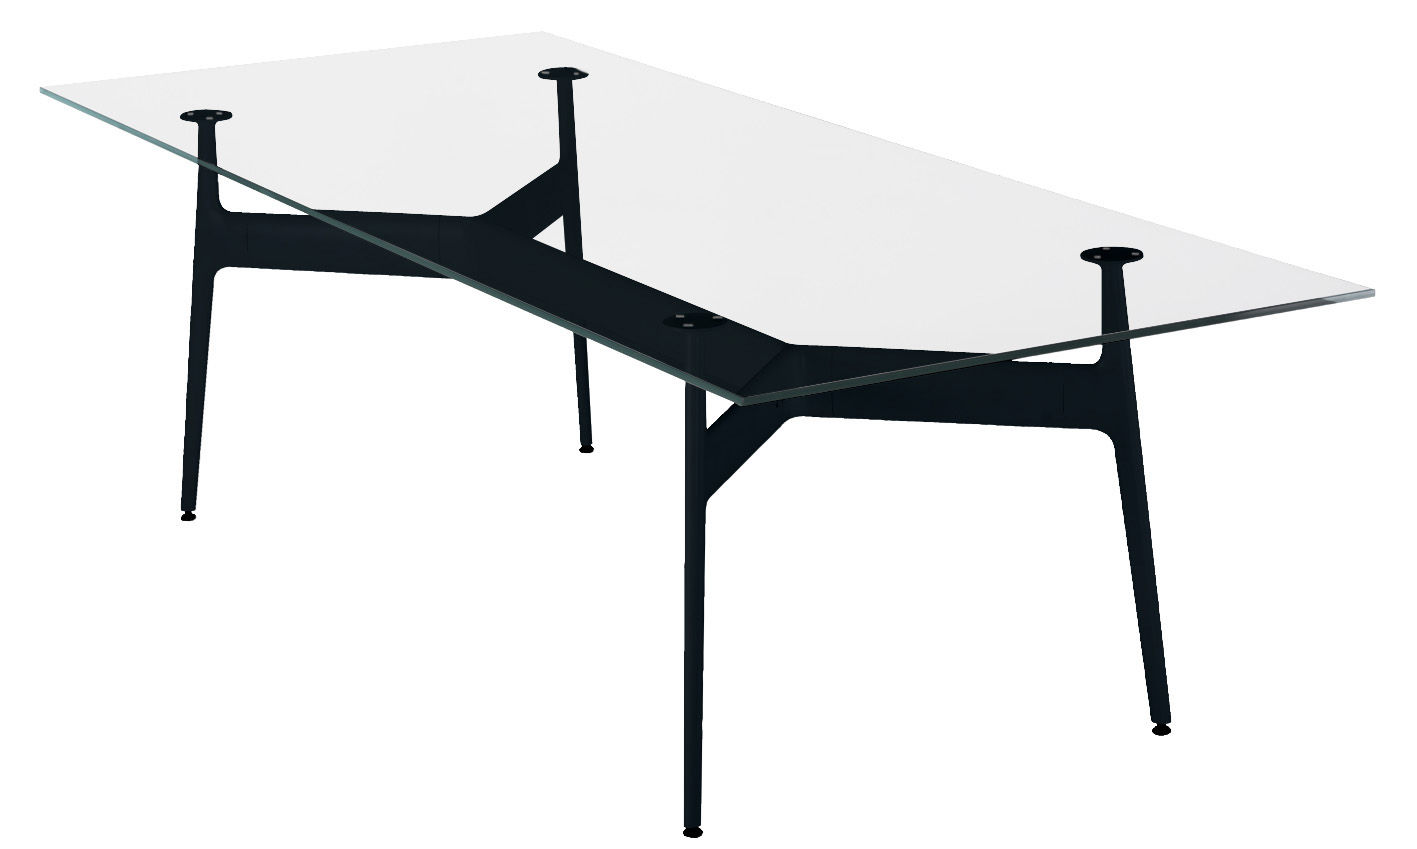 Furniture - Dining Tables - Aracne Rectangular table - 243 x 100 cm - Glass top by Eumenes - Black structure / Ultra-clear glass top - Aluminium, Glass